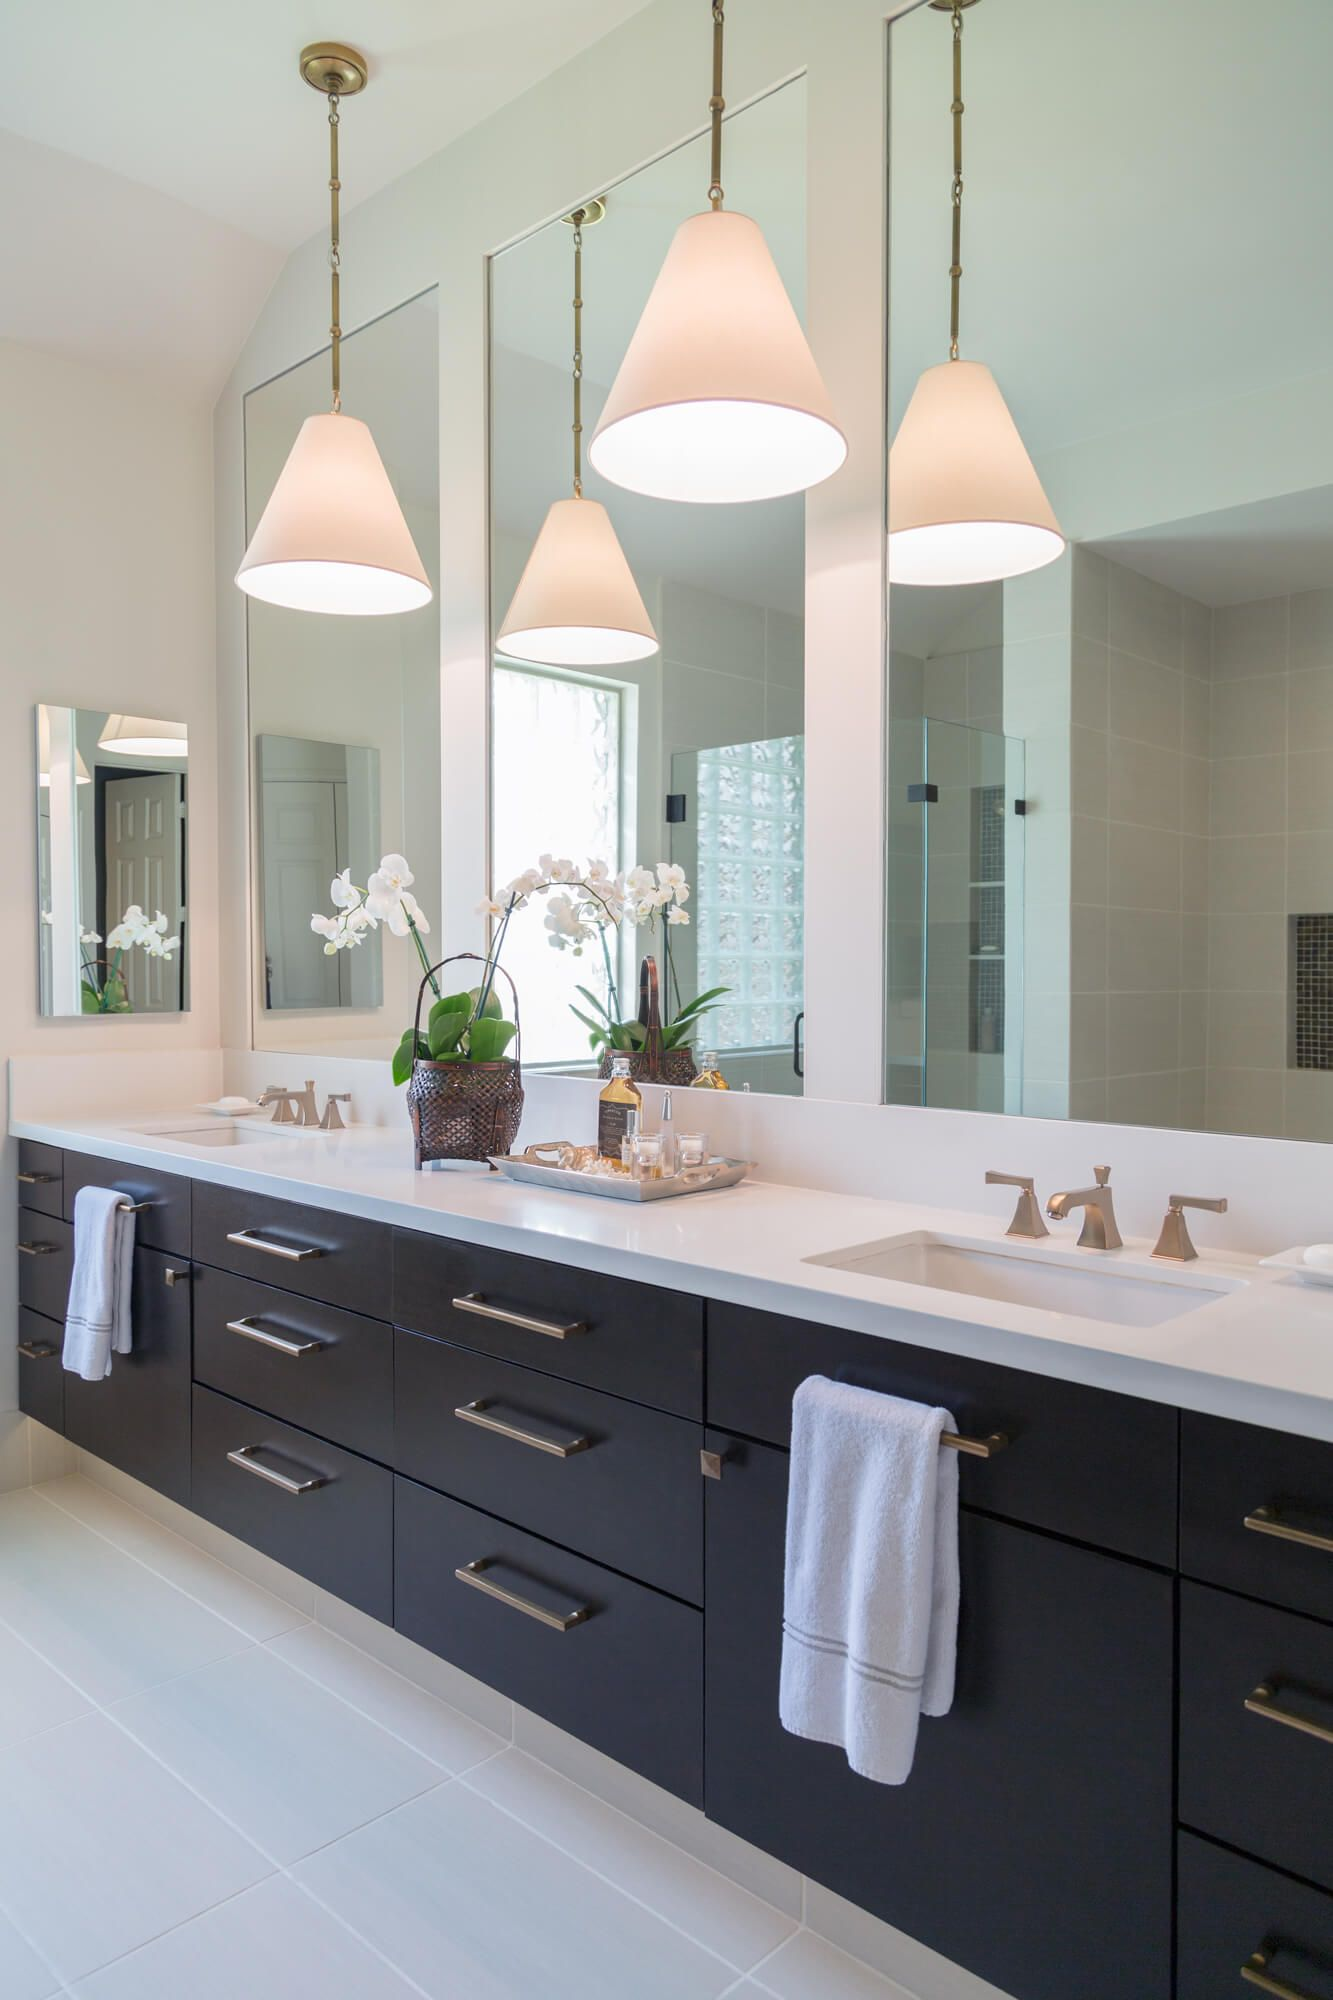 Floating Linear Look Bathroom Vanity In An Espresso Stain Gives An Open And More Modern Bathroom Vanity Designs Modern Bathroom Remodel Master Bathroom Design [ 2000 x 1333 Pixel ]